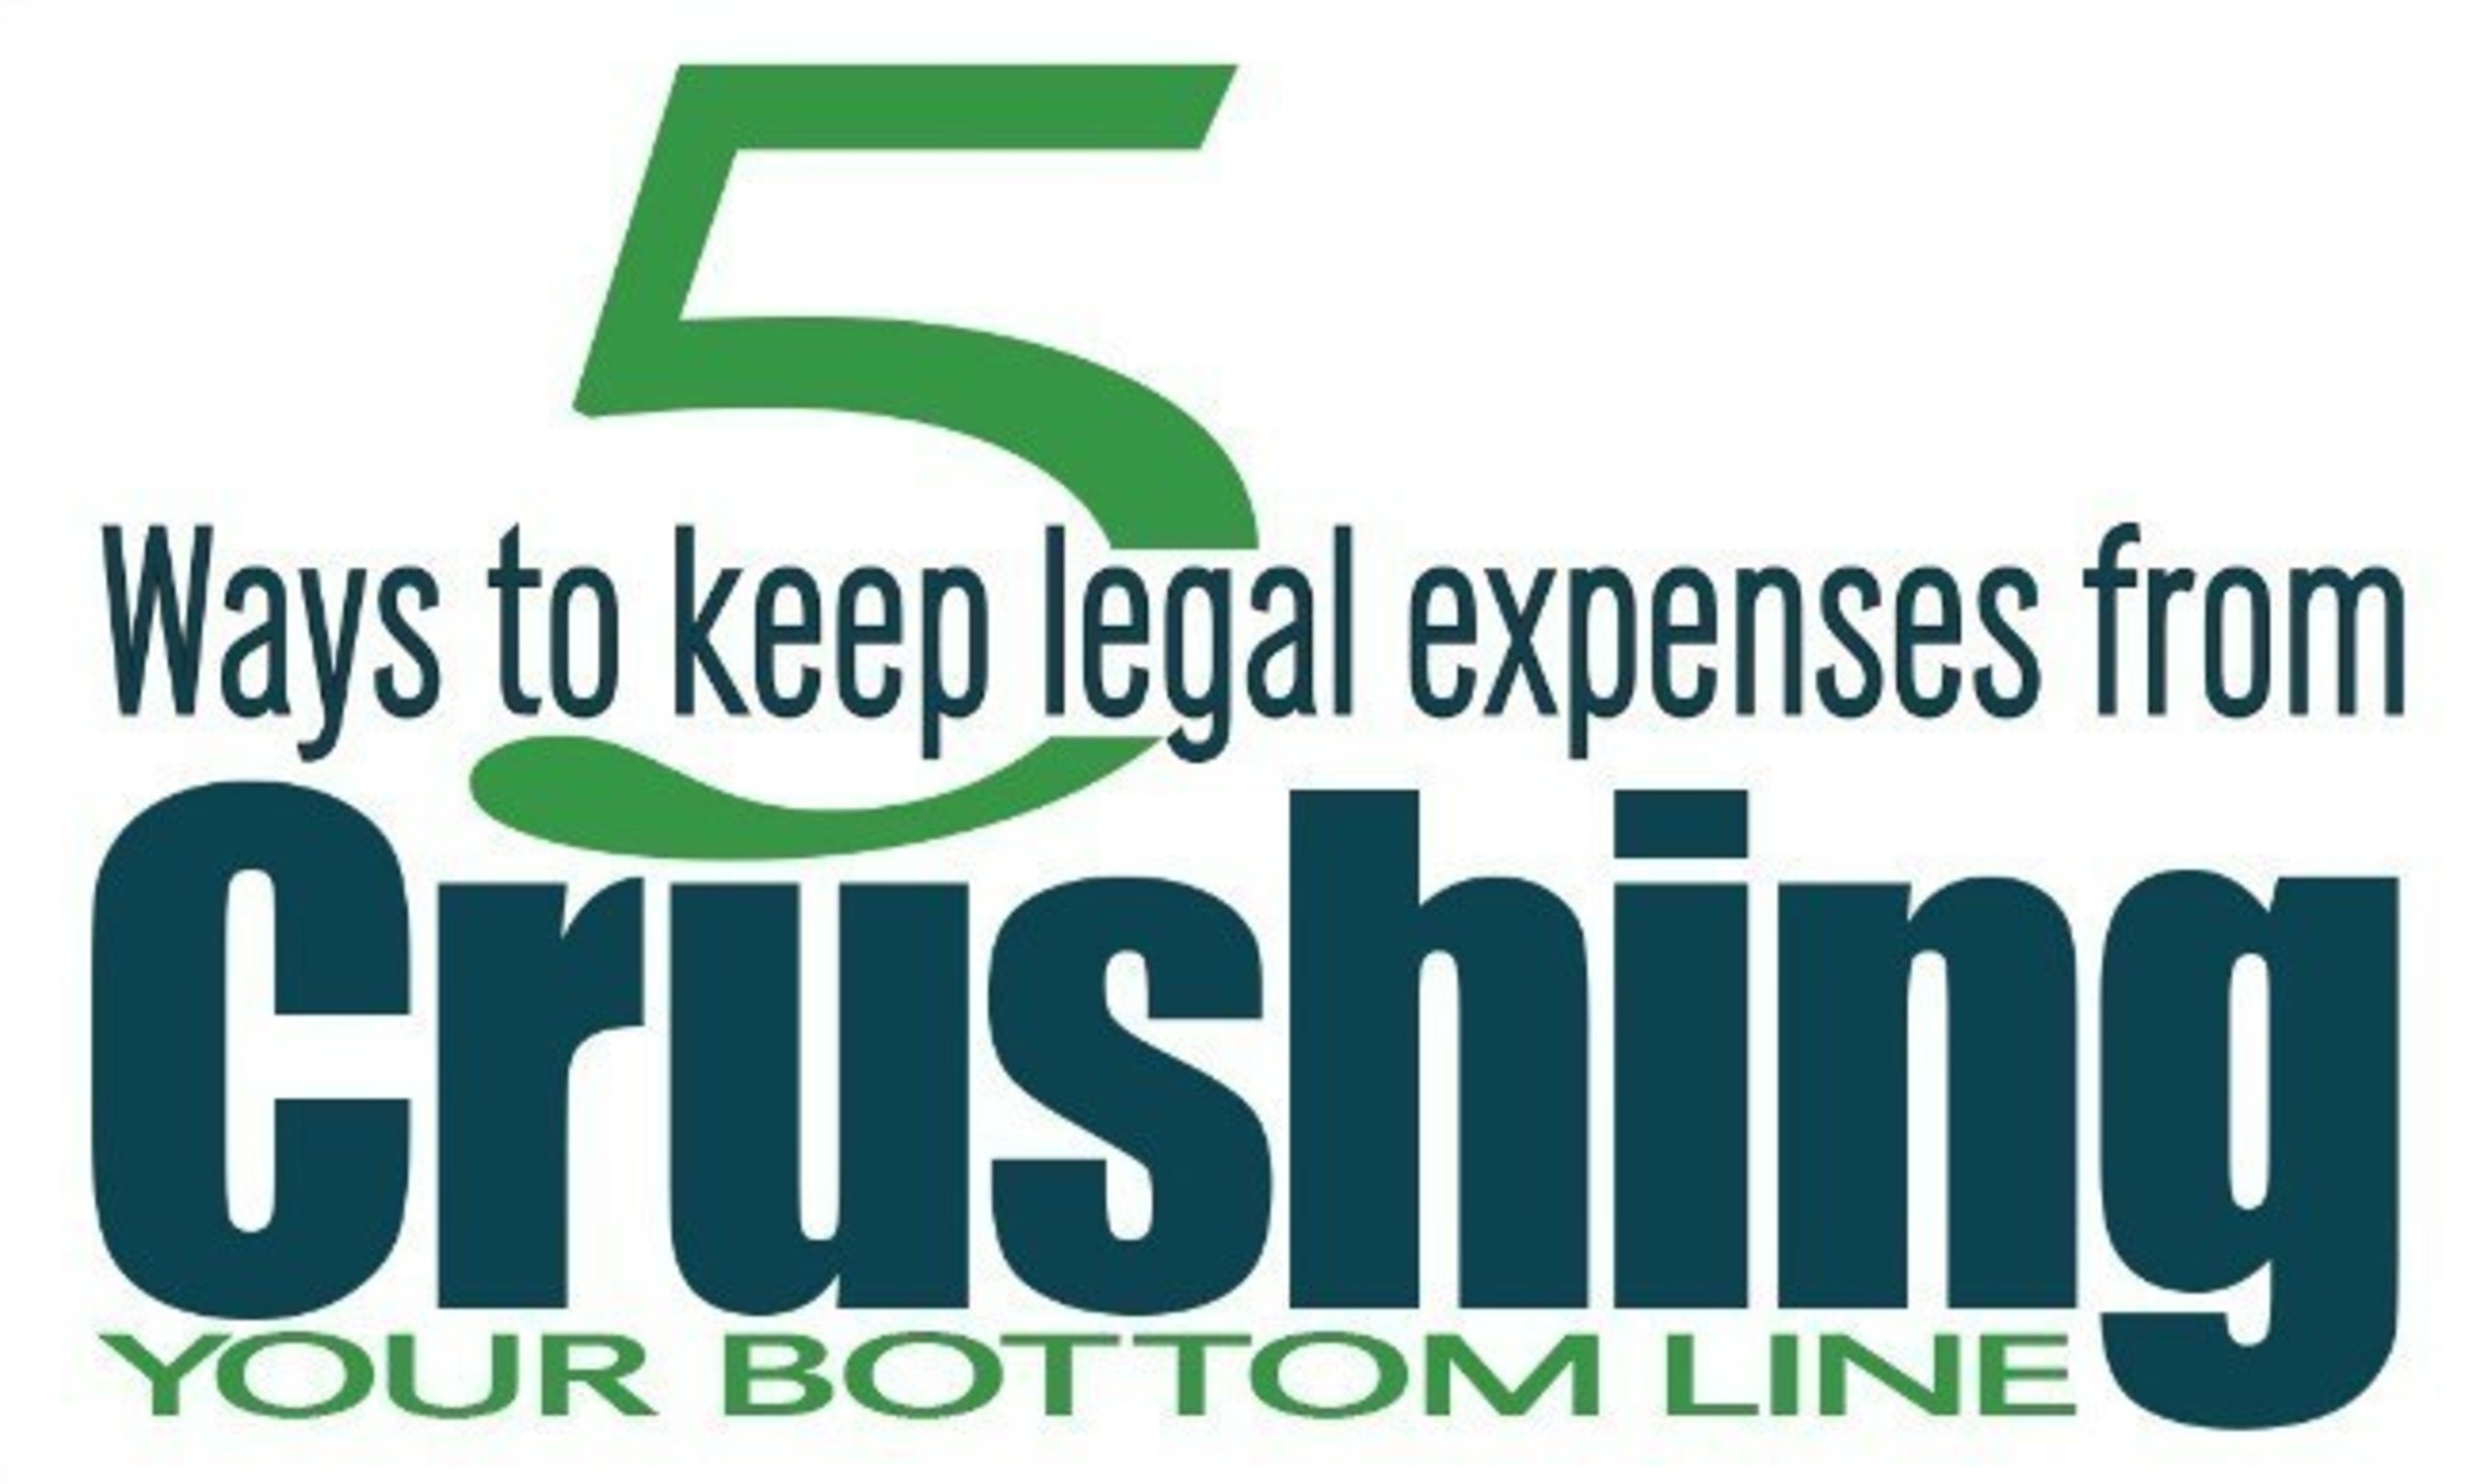 How to Keep Legal Expenses From Crushing Your Bottom Line